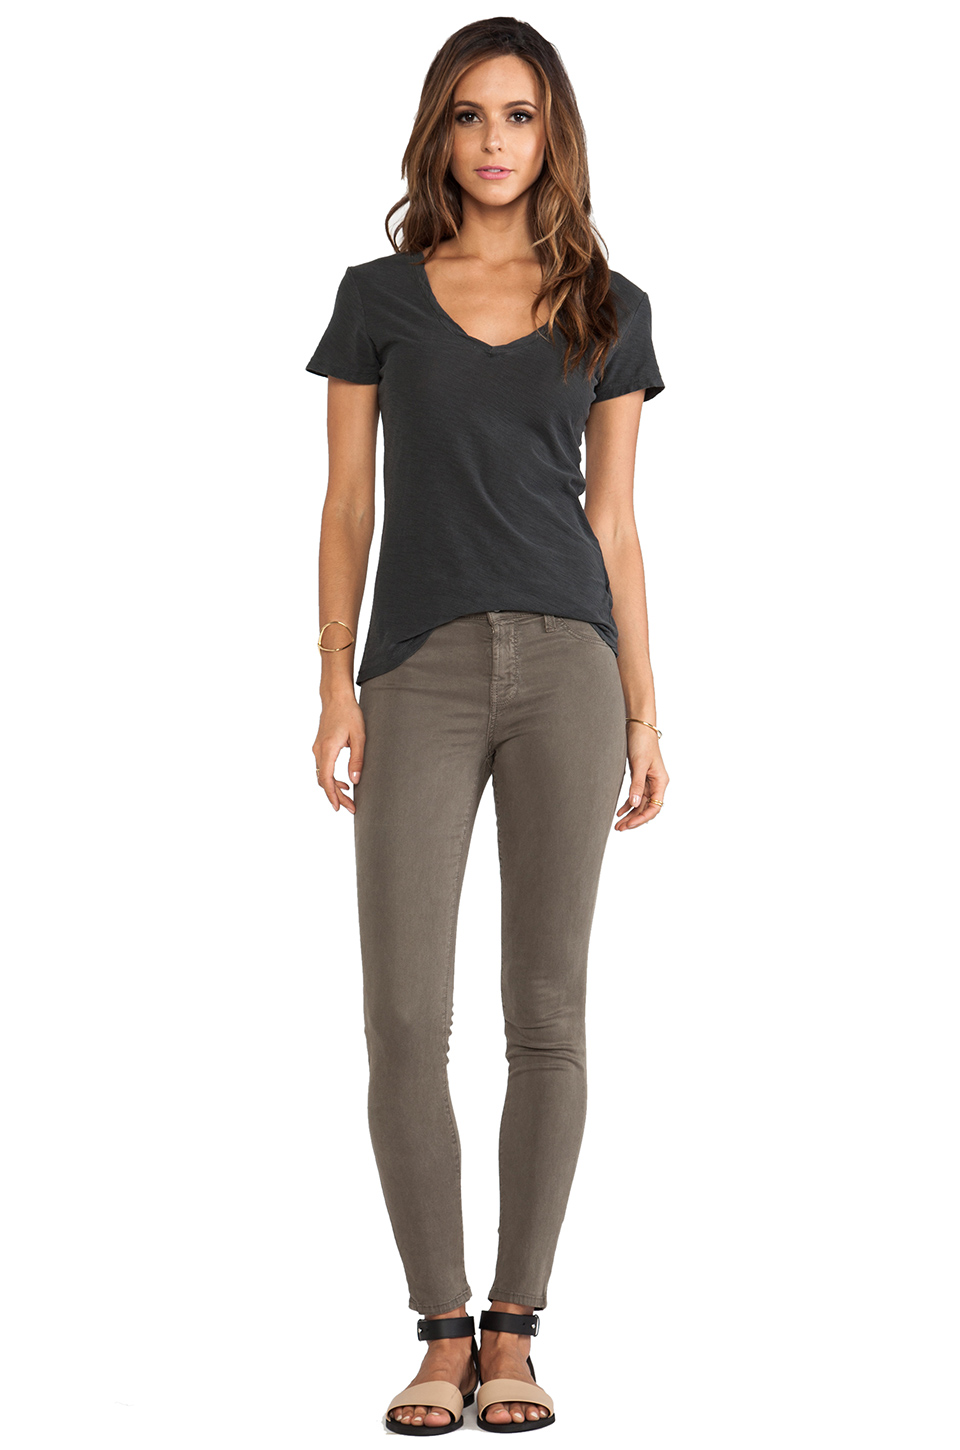 James Perse Casual Tee w/ Reverse Binding in Carbon   REVOLVE